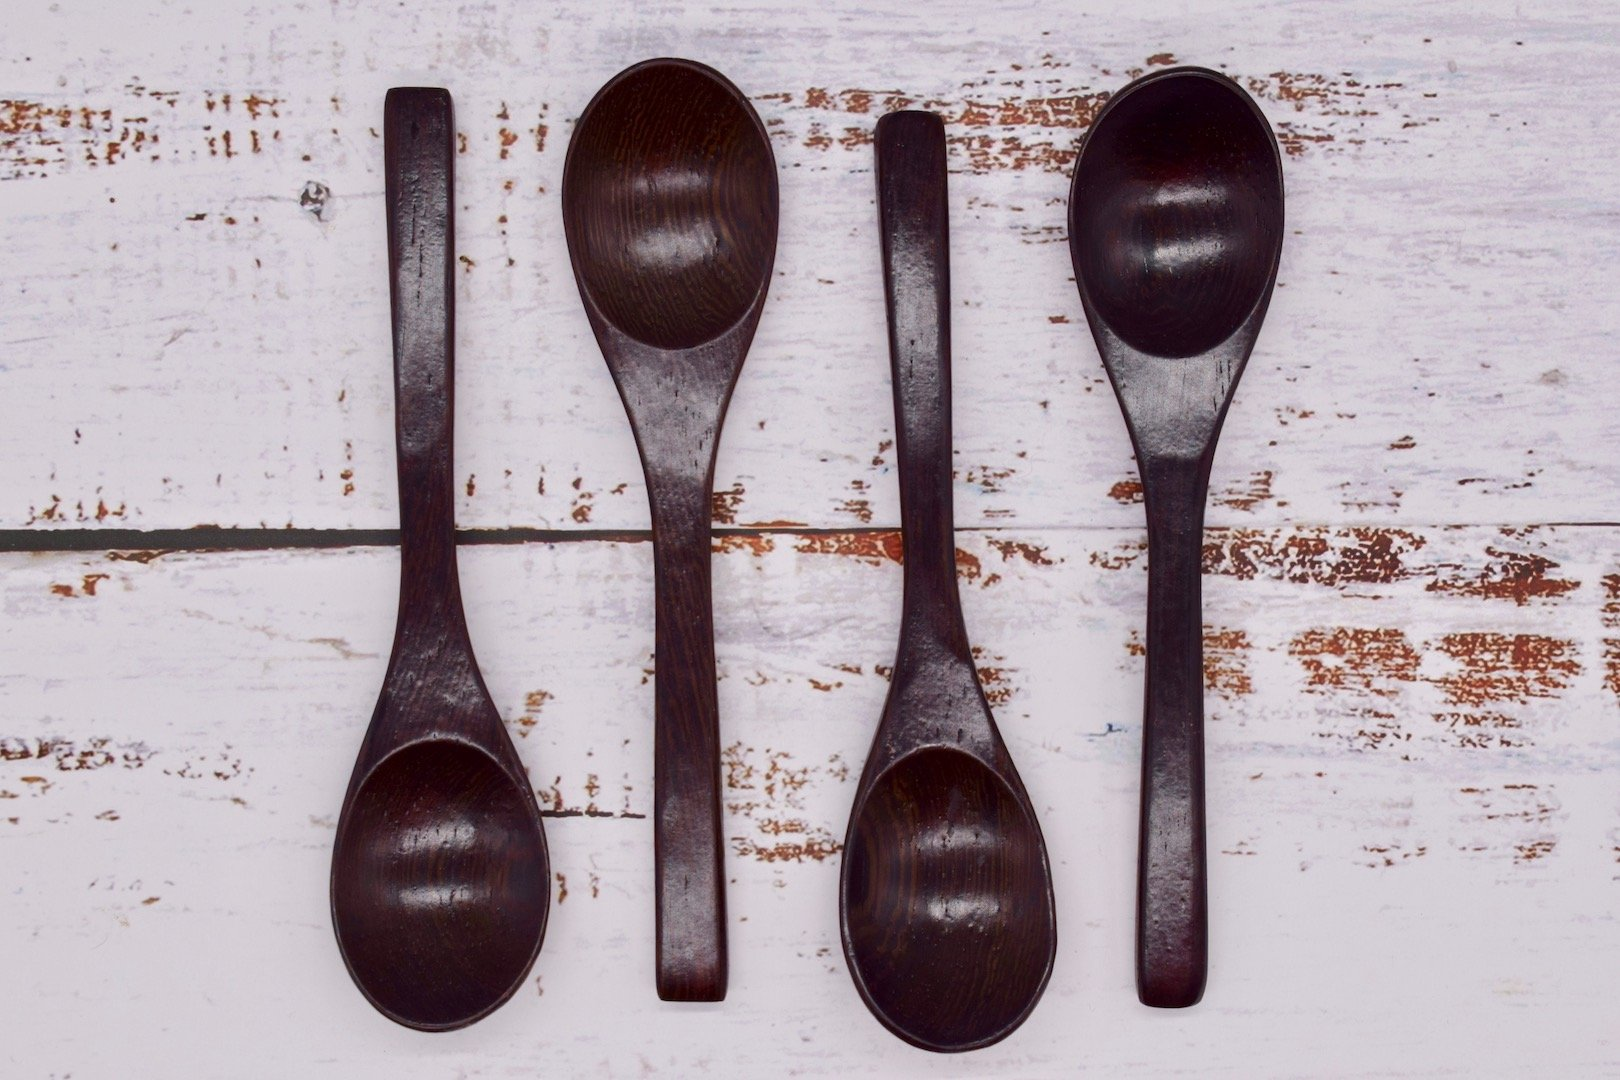 4 Ebony spoons laid out top to tail